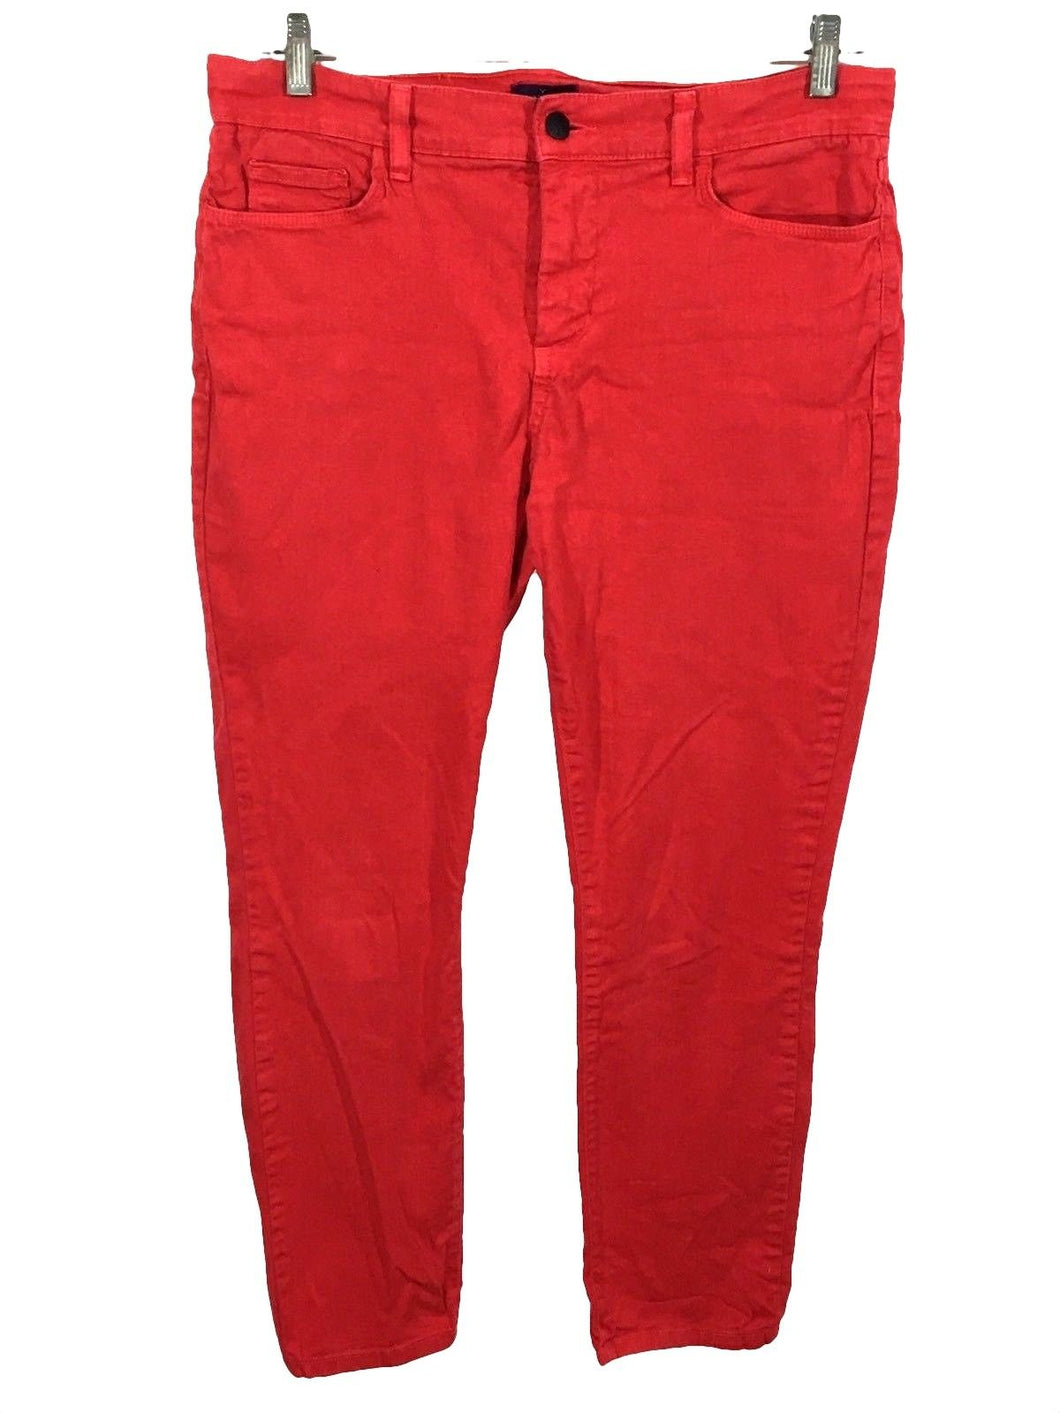 Not Your Daughter's Jeans NYDJ Lift Tuck Stretch Red Womens Size 10 - Preowned - FunkyCrap Boutique